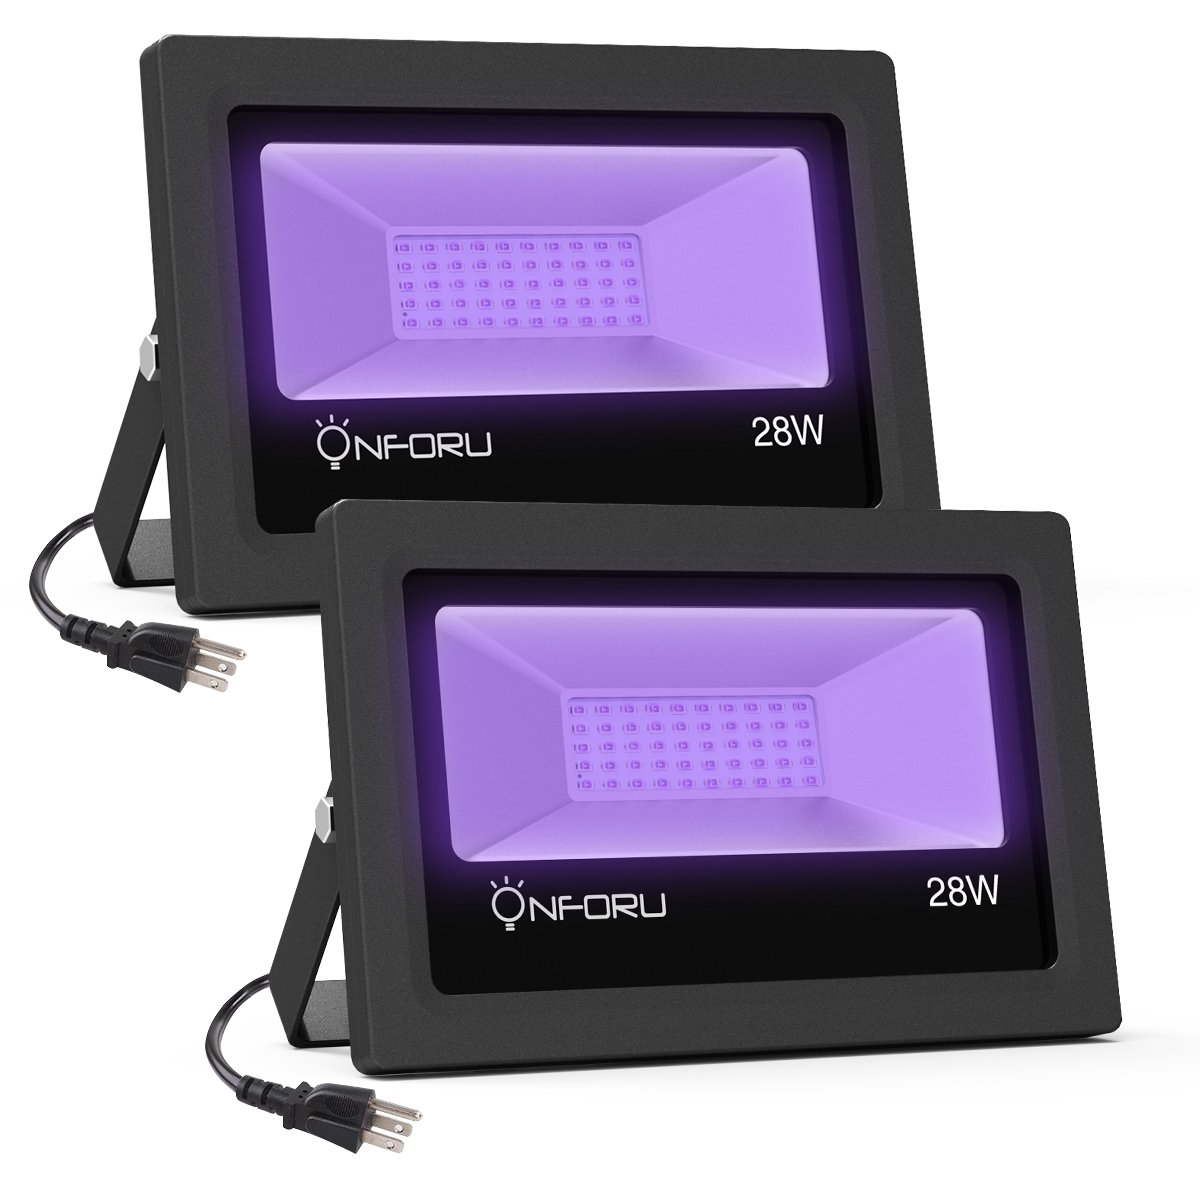 Onforu 2 Pack 28W UV LED Black Light Flood Light with Plug, IP66 Waterproof, for Blacklight Party, Stage Lighting, Aquarium, Body Paint, Fluorescent Poster, Neon Glow, Fishing, Glow in the Dark